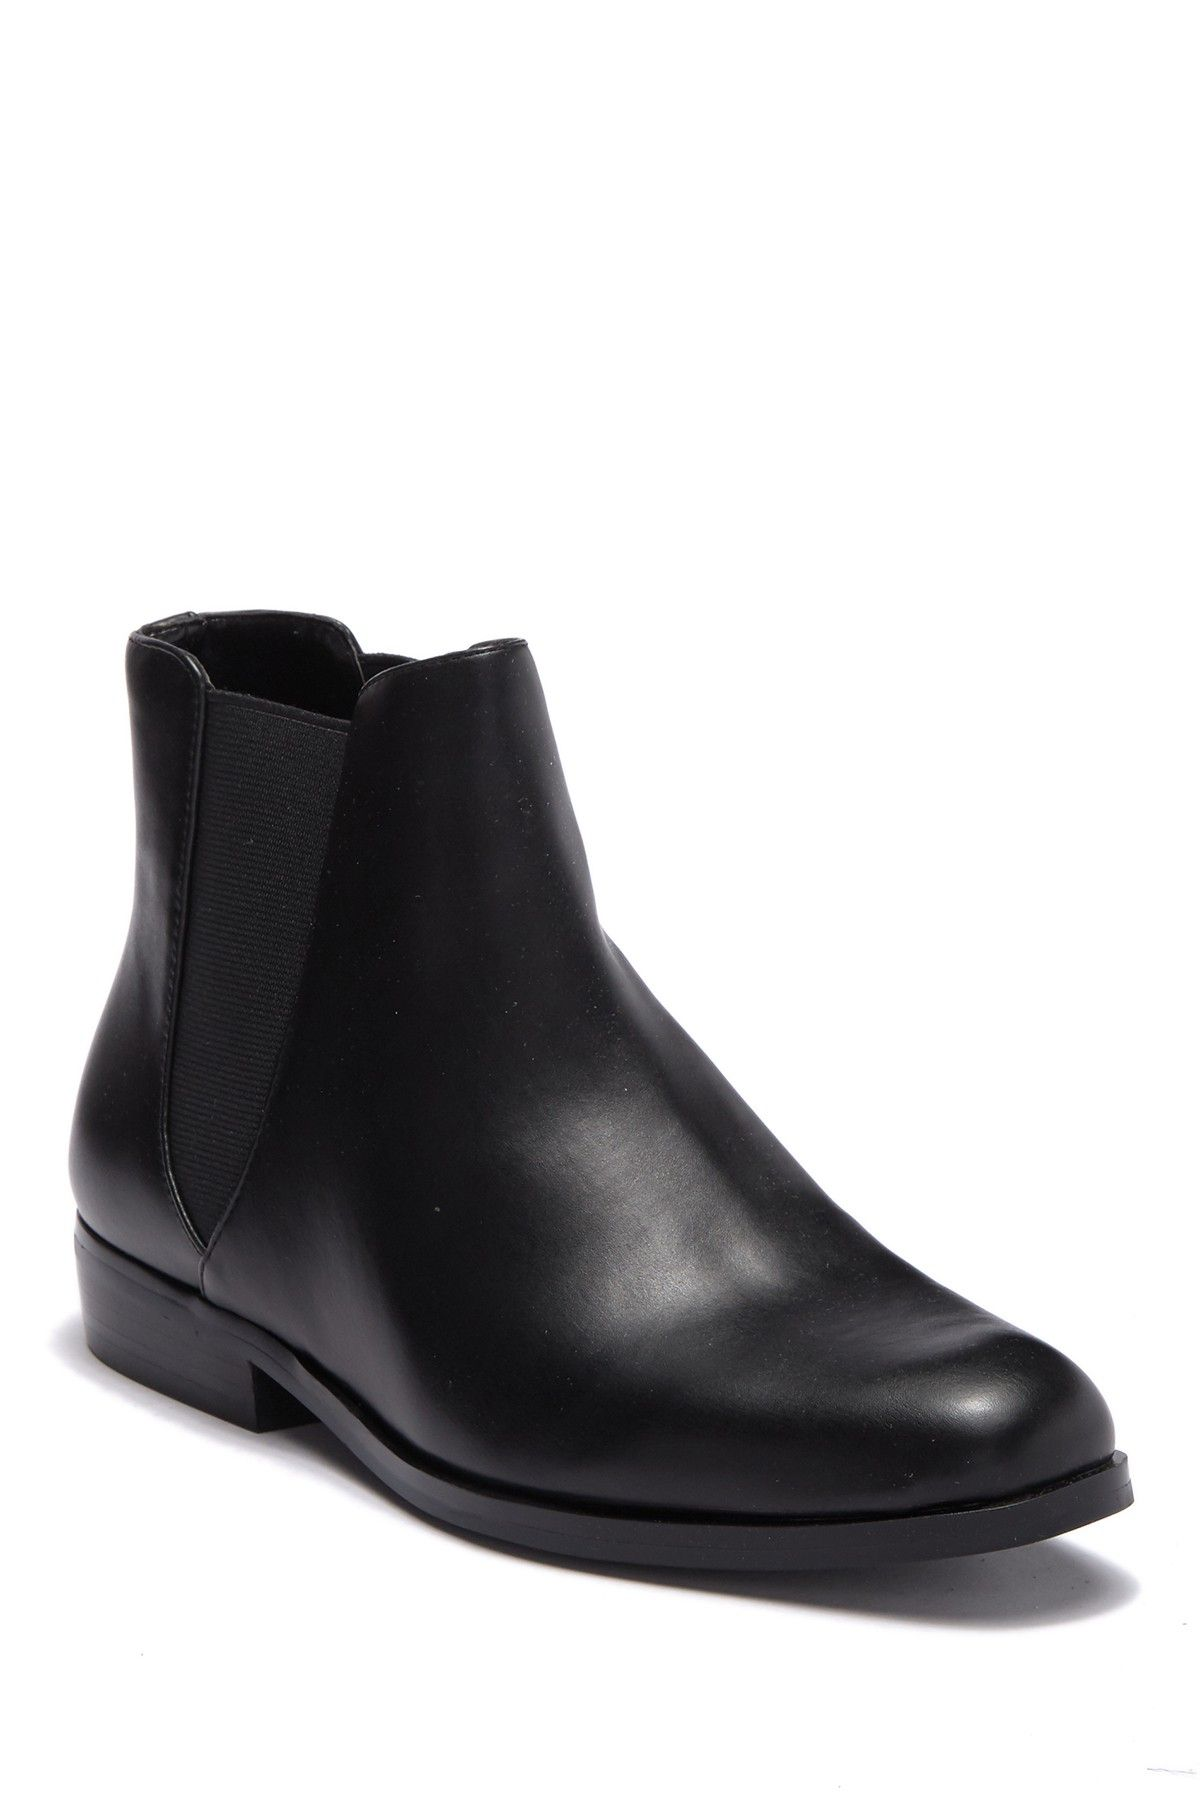 14th & Union Odin Chelsea Boot Chelsea boots, Boots, Shoes